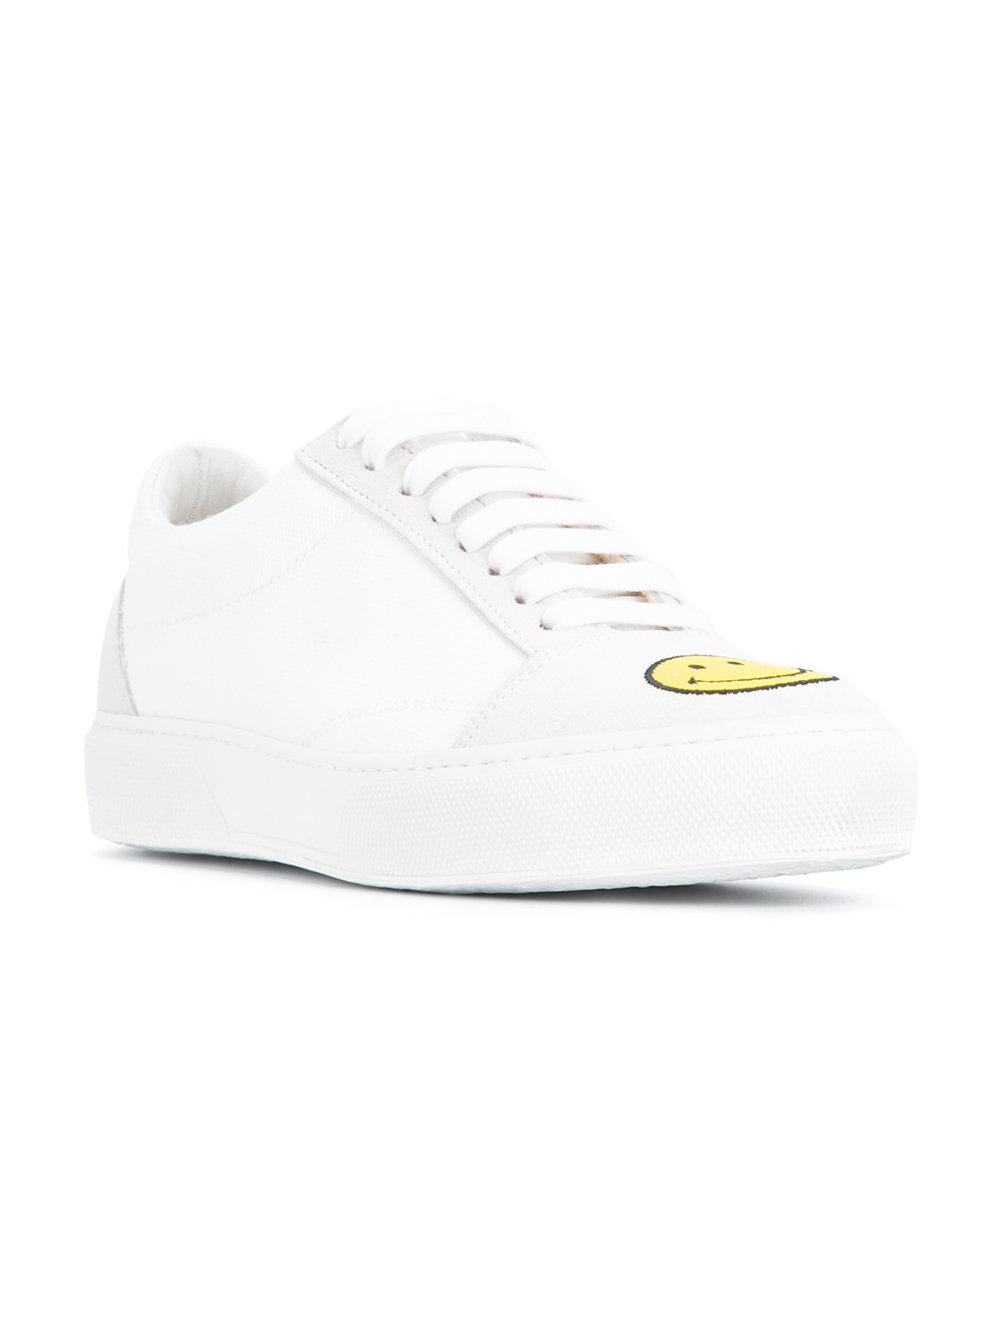 Joshua Sanders Leather Embroidered Smiley Face Sneakers in White